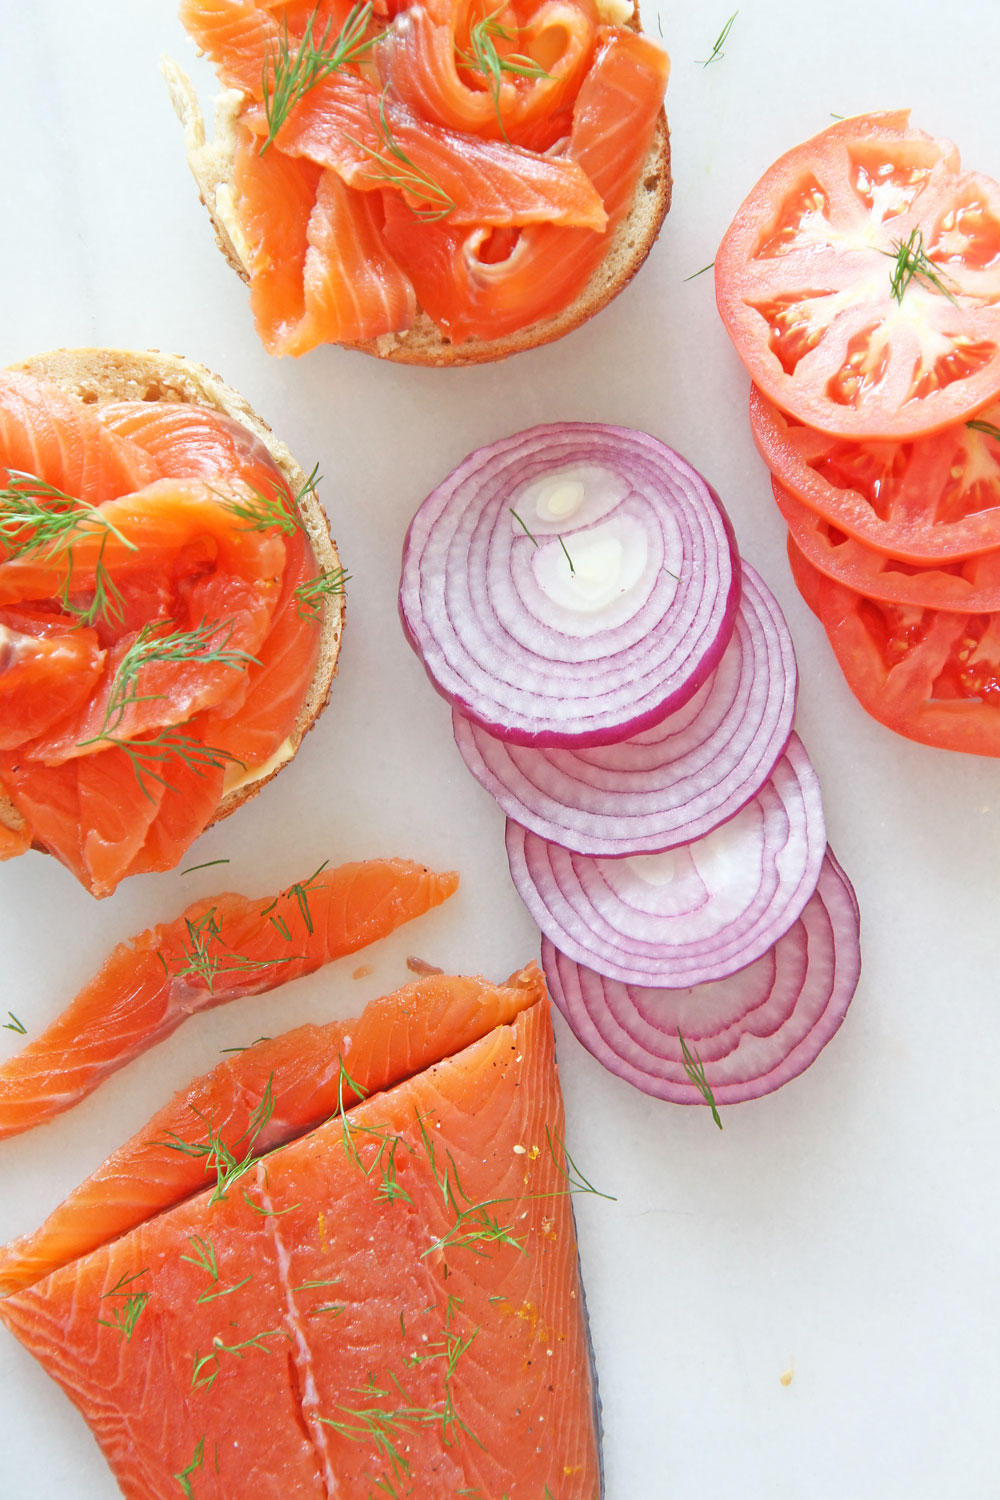 How To Make Homemade Lox (gravlax). NYC bagel classic that is as easy as salt and sugar. This salmon recipe is all done in the fridge and is a perfect brunch idea. Happy Cooking! www.ChopHappy.com #gravlax #homemadelox